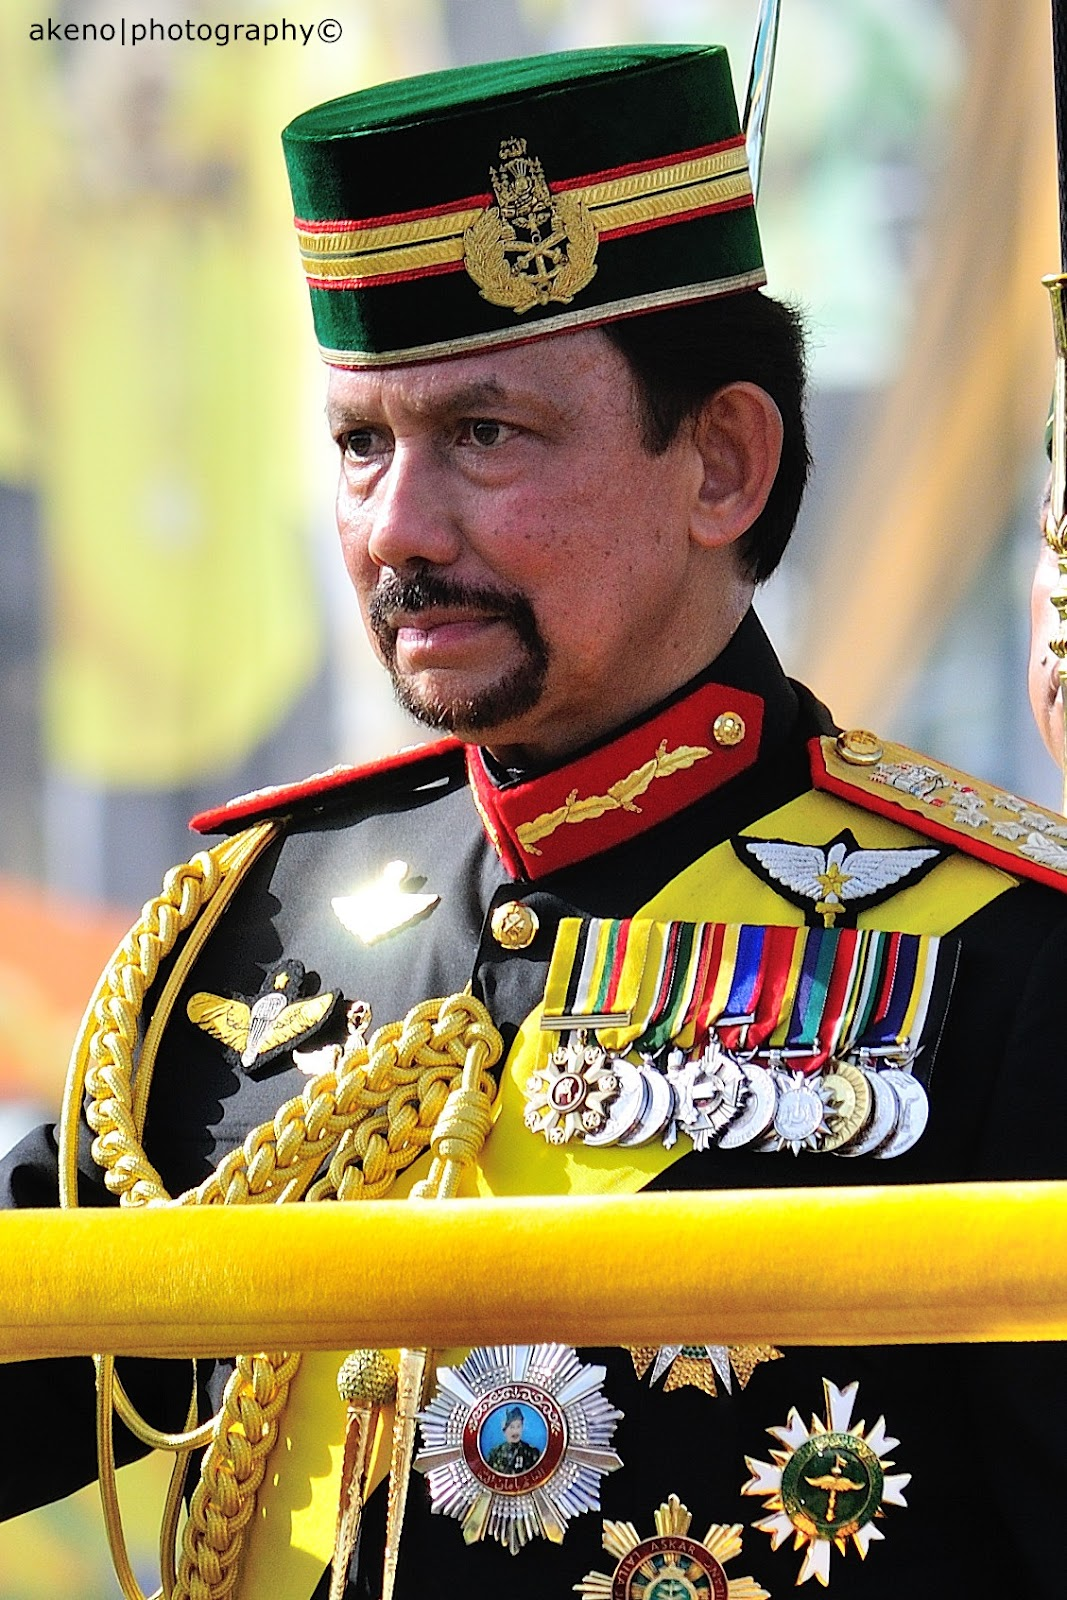 Sharing is Caring our beloved Sultan of Brunei